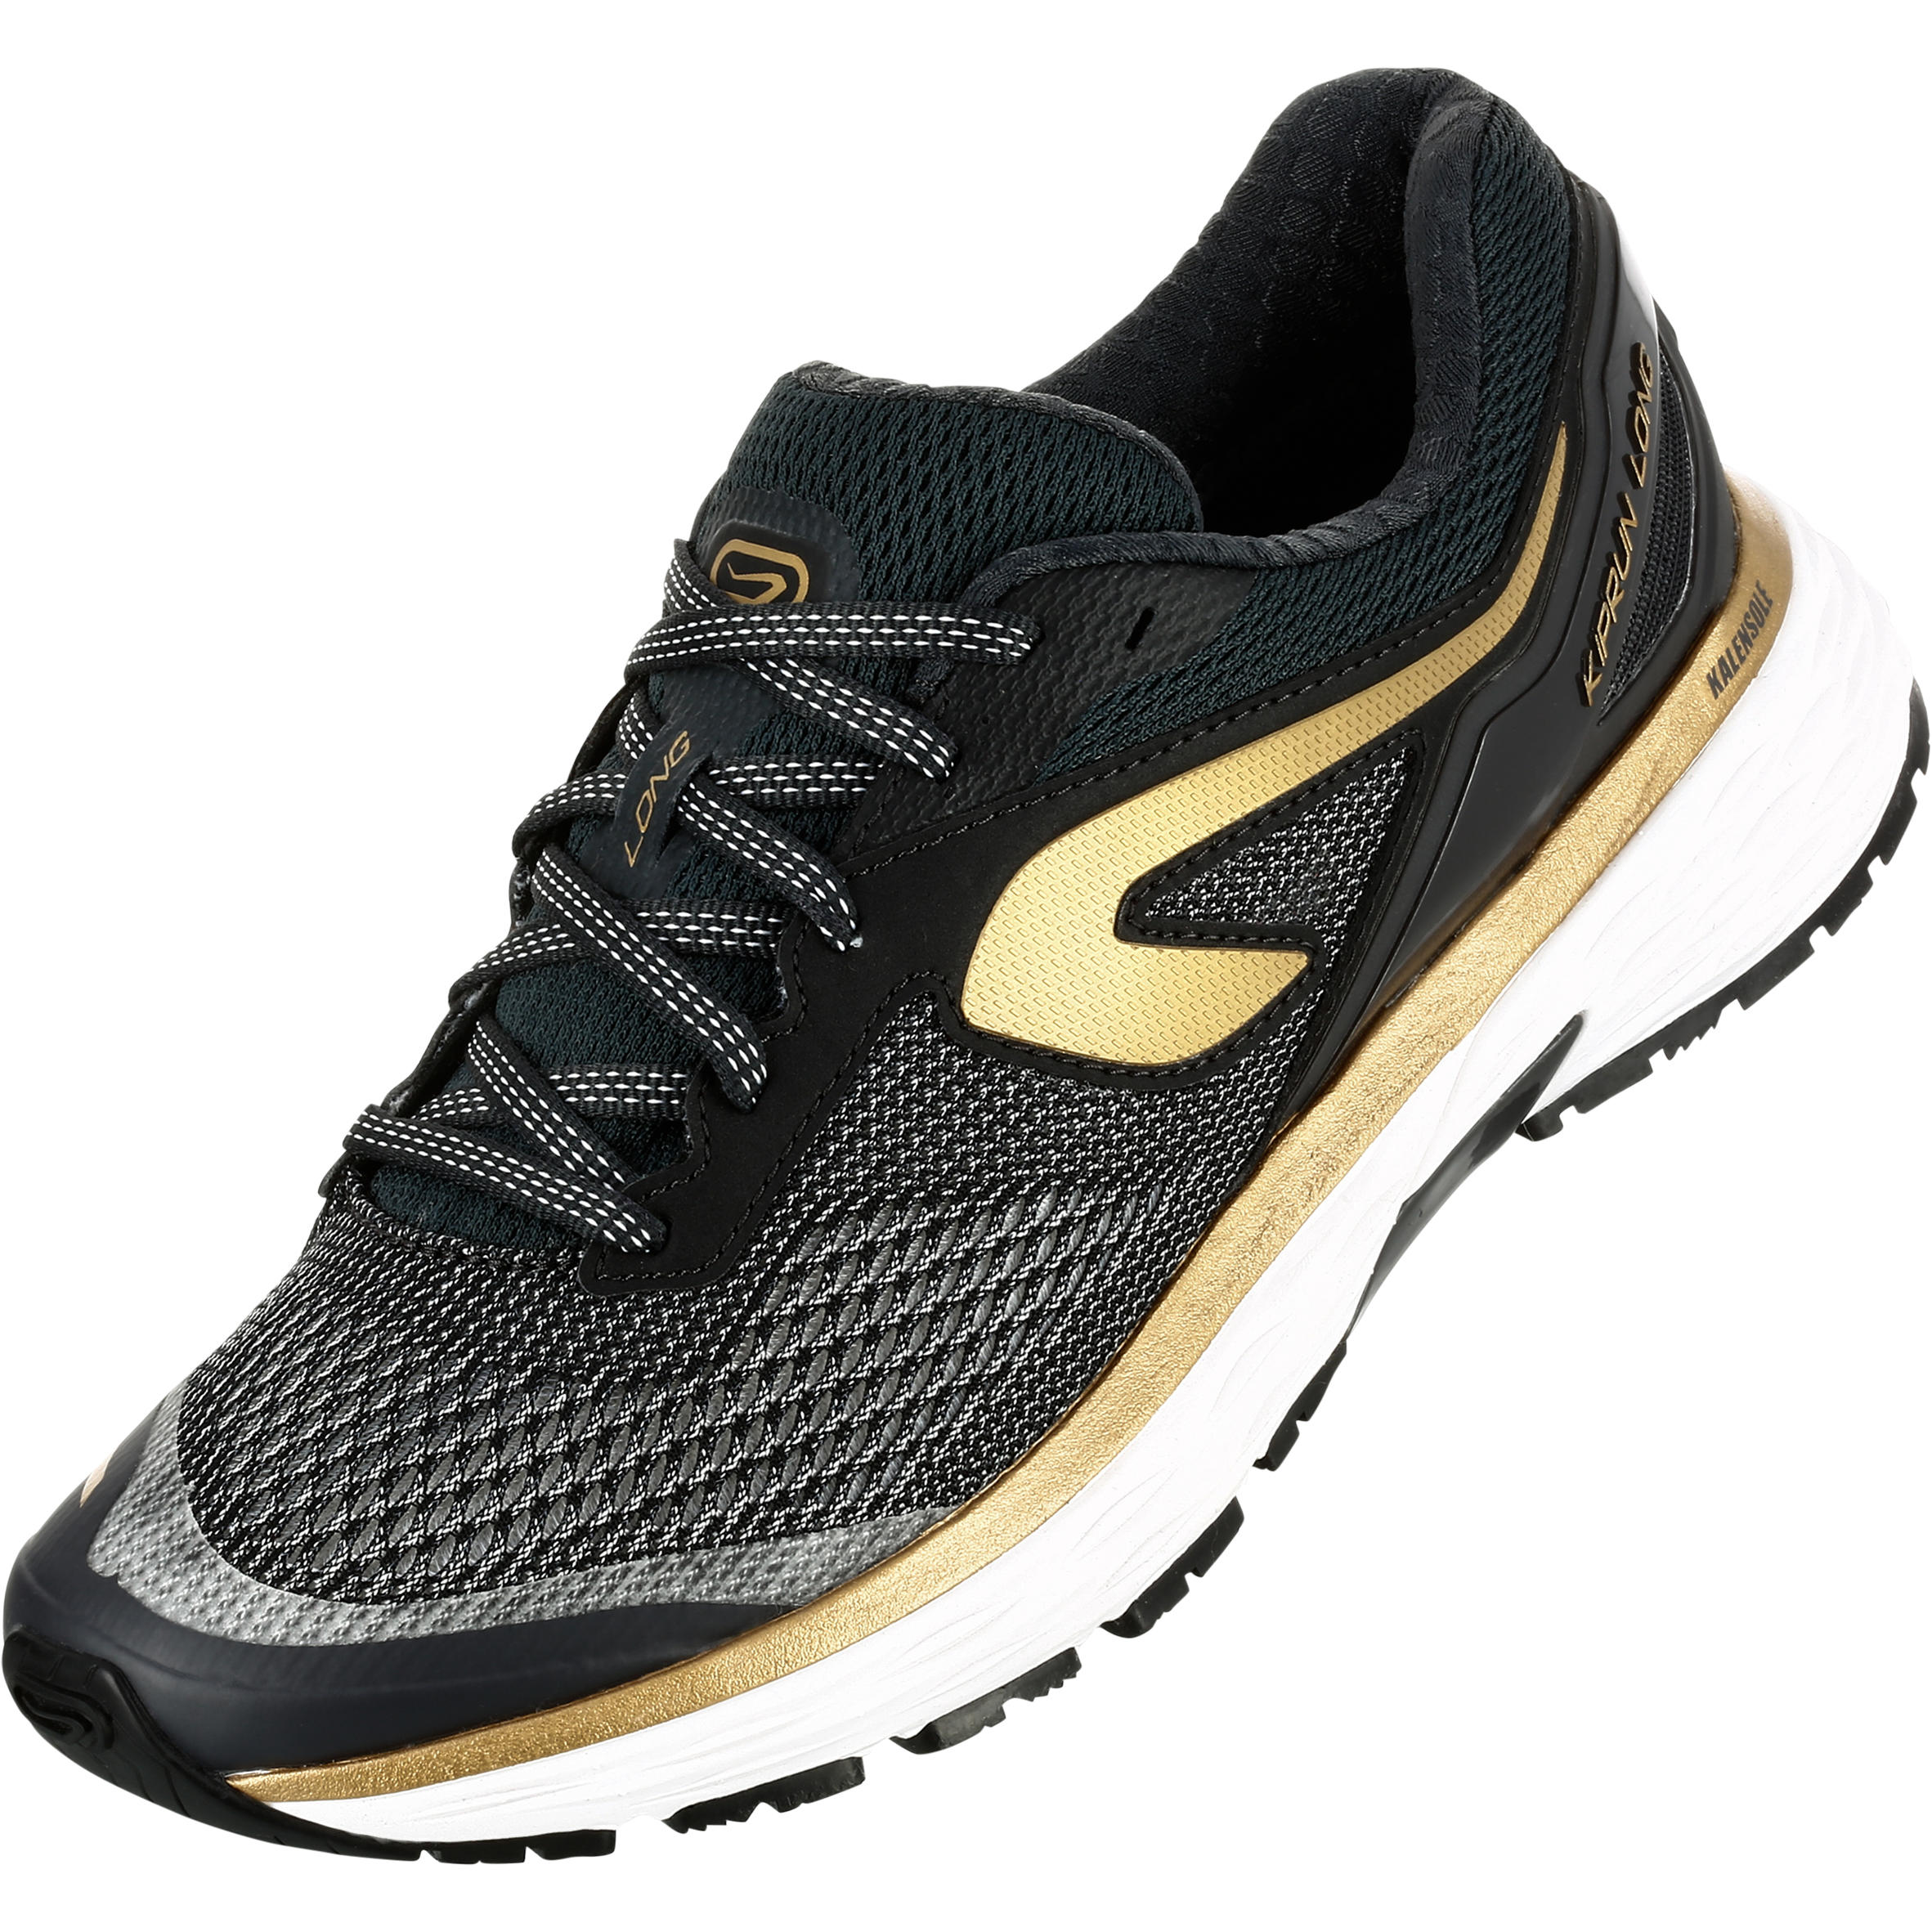 KIPRUN LONG WOMEN'S RUNNING SHOES BLACK GOLD